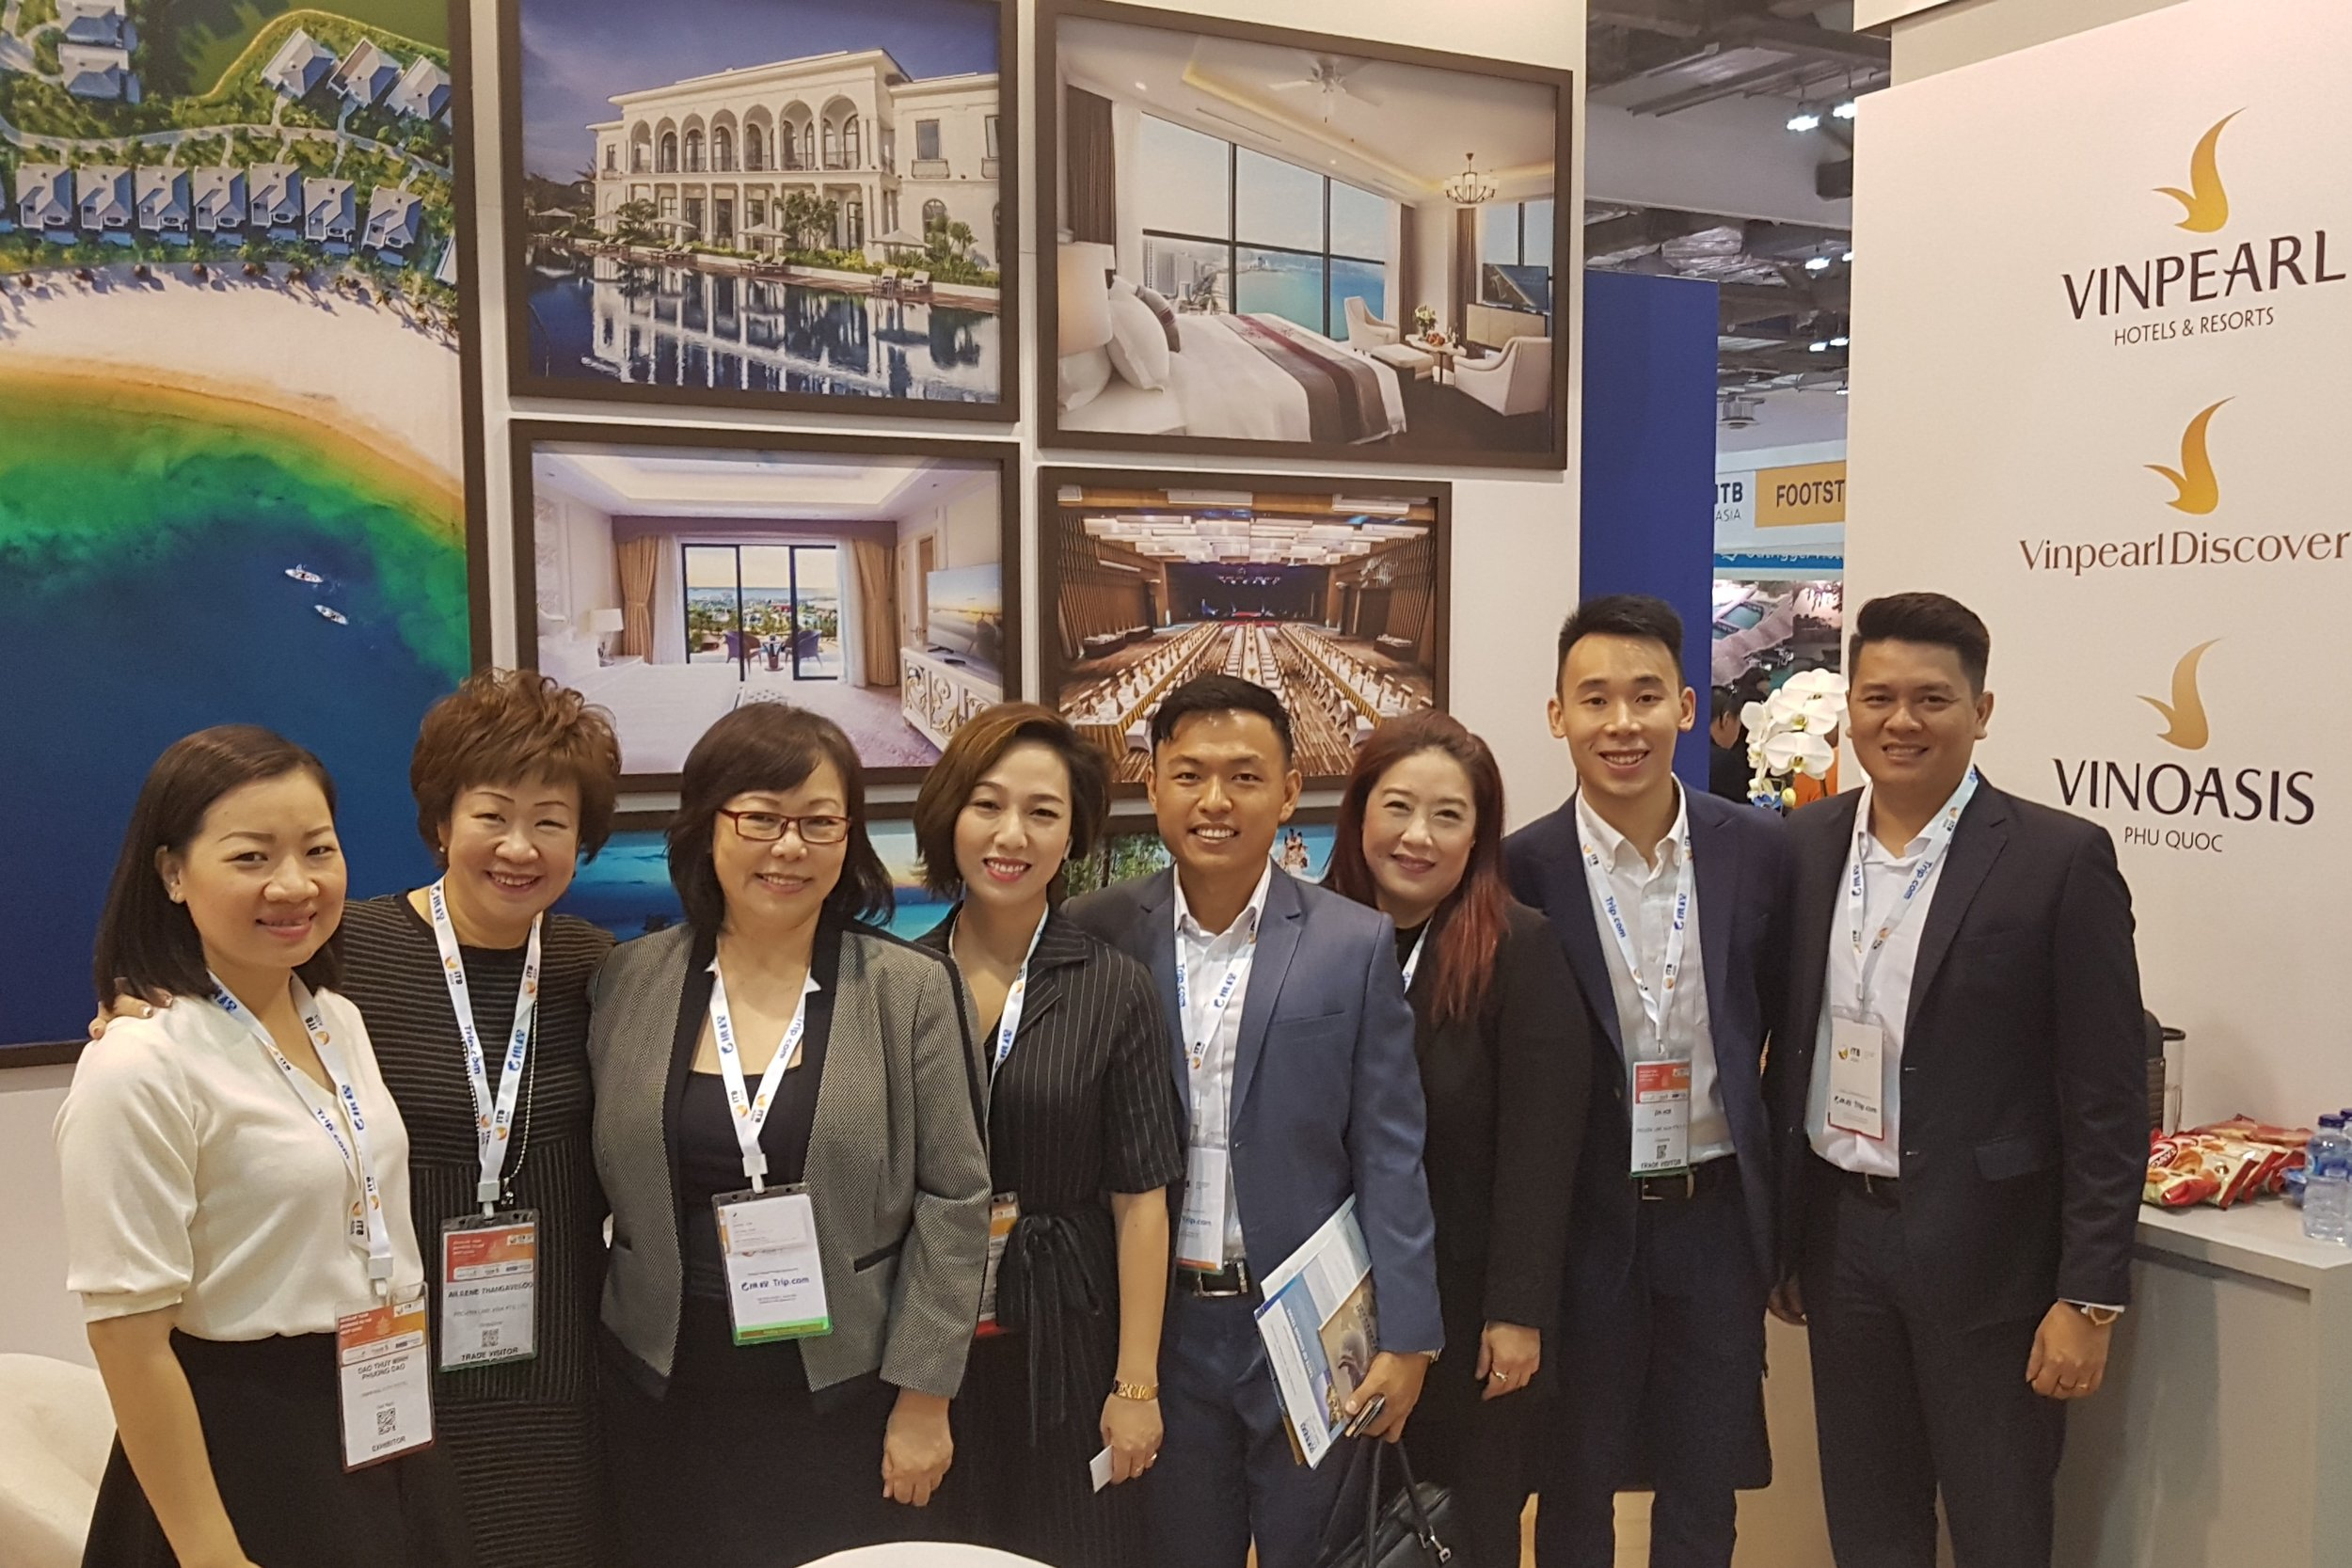 From left to right:  Ms Dao Thut (Vinpearl), Ms Aileene Thangaveloo (FLA), Ms Serene Law (FLA), Ms Vu Duc Toan (Vinpearl), Mr Leonard Chiang (FLA), Ms Bernice Heng (Vinpearl), Mr Pow Zhi Hoe (FLA), Mr Vu Duc Toan (Vinpearl).